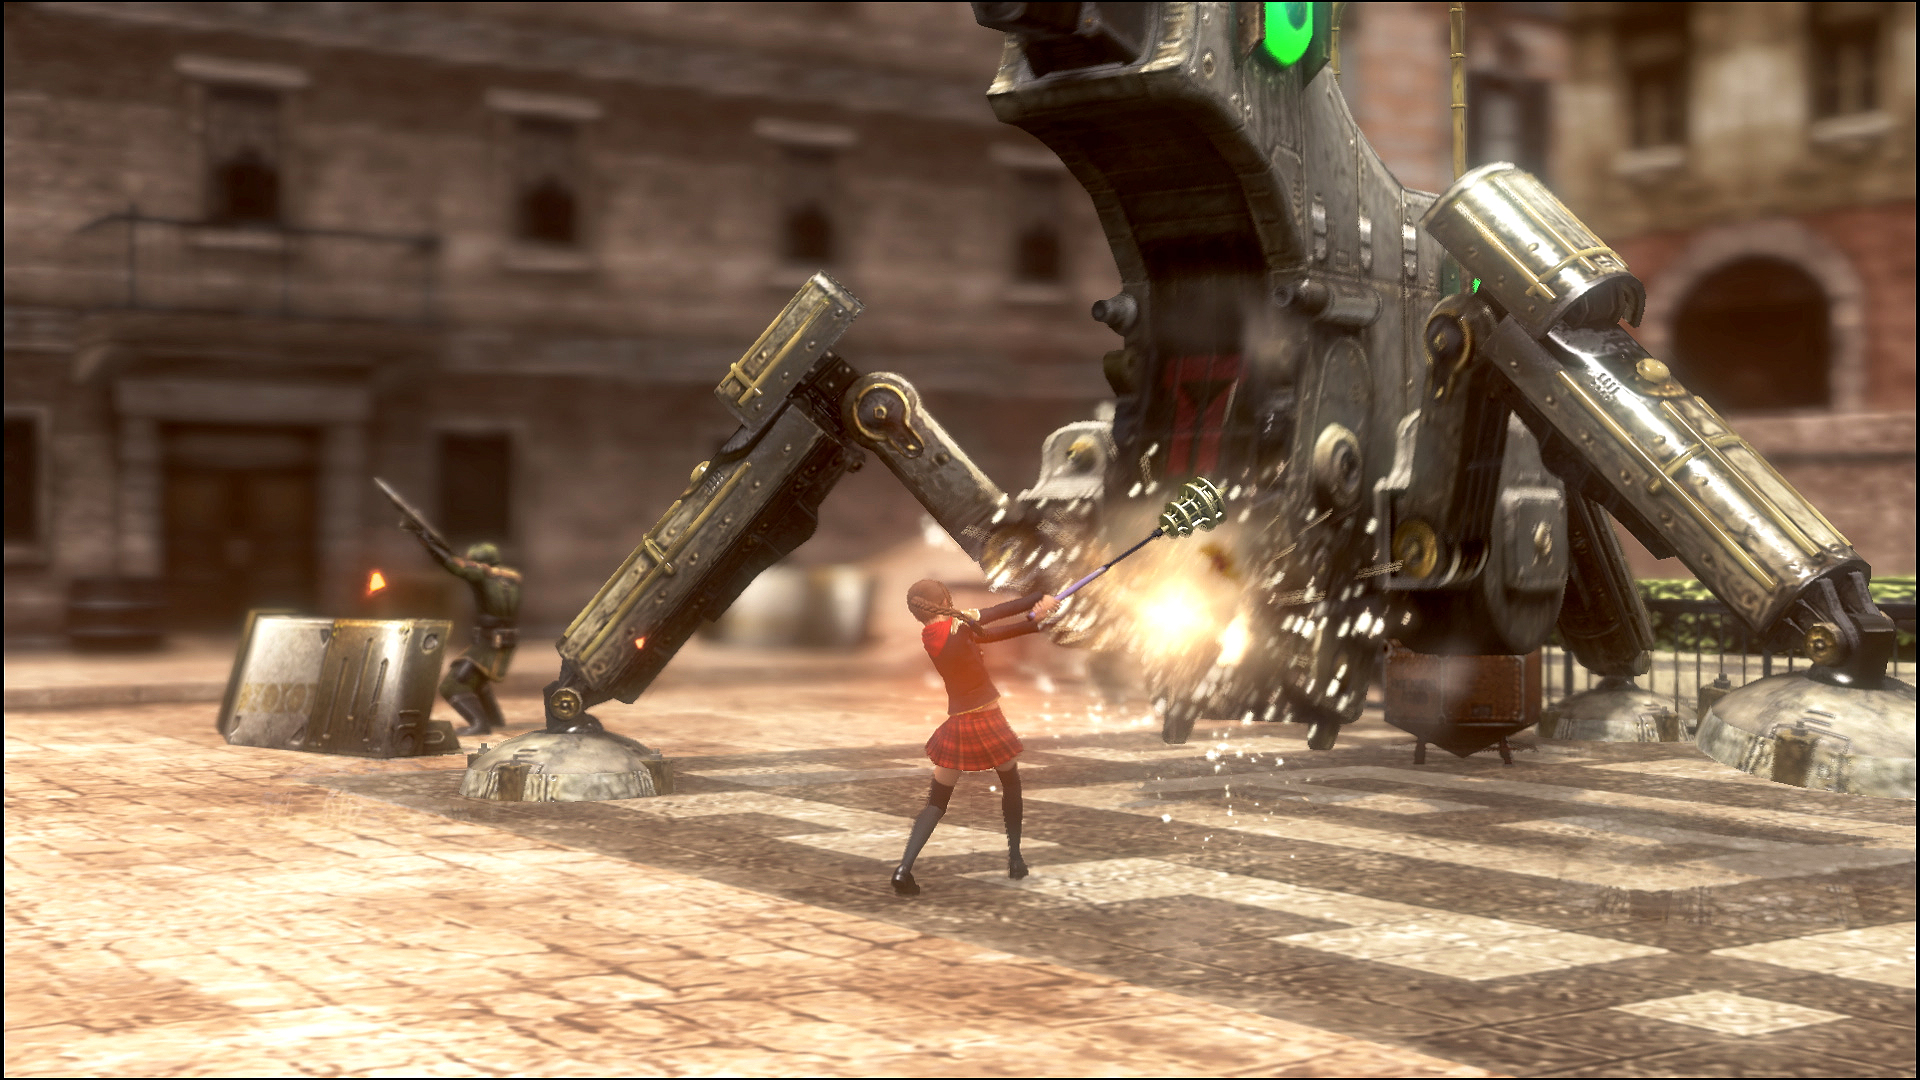 The boss battles are the most challenging and satisfying parts of Final Fantasy Type-0 HD.